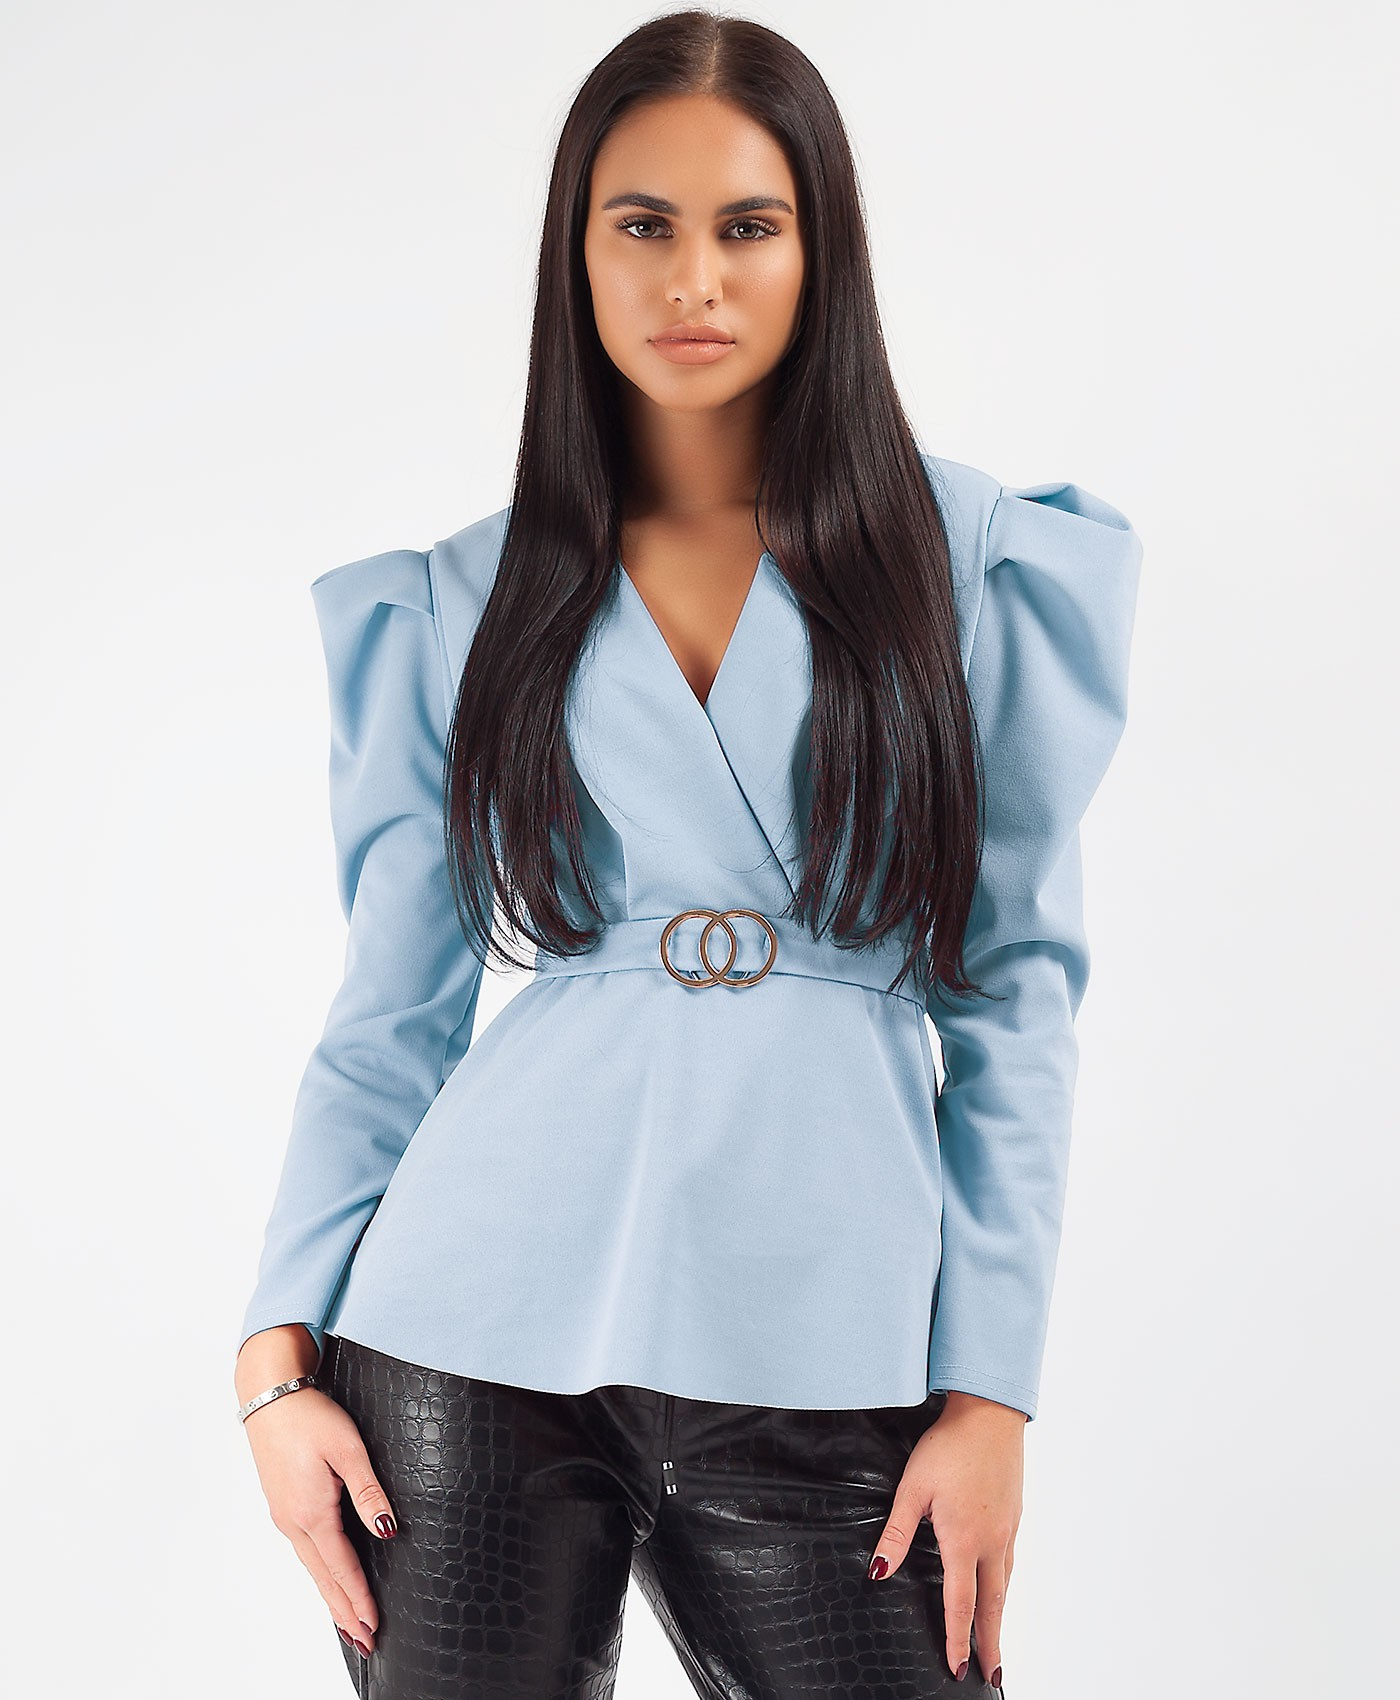 Sky Blue Double Ring Belt Puff Shoulder Blouse Top